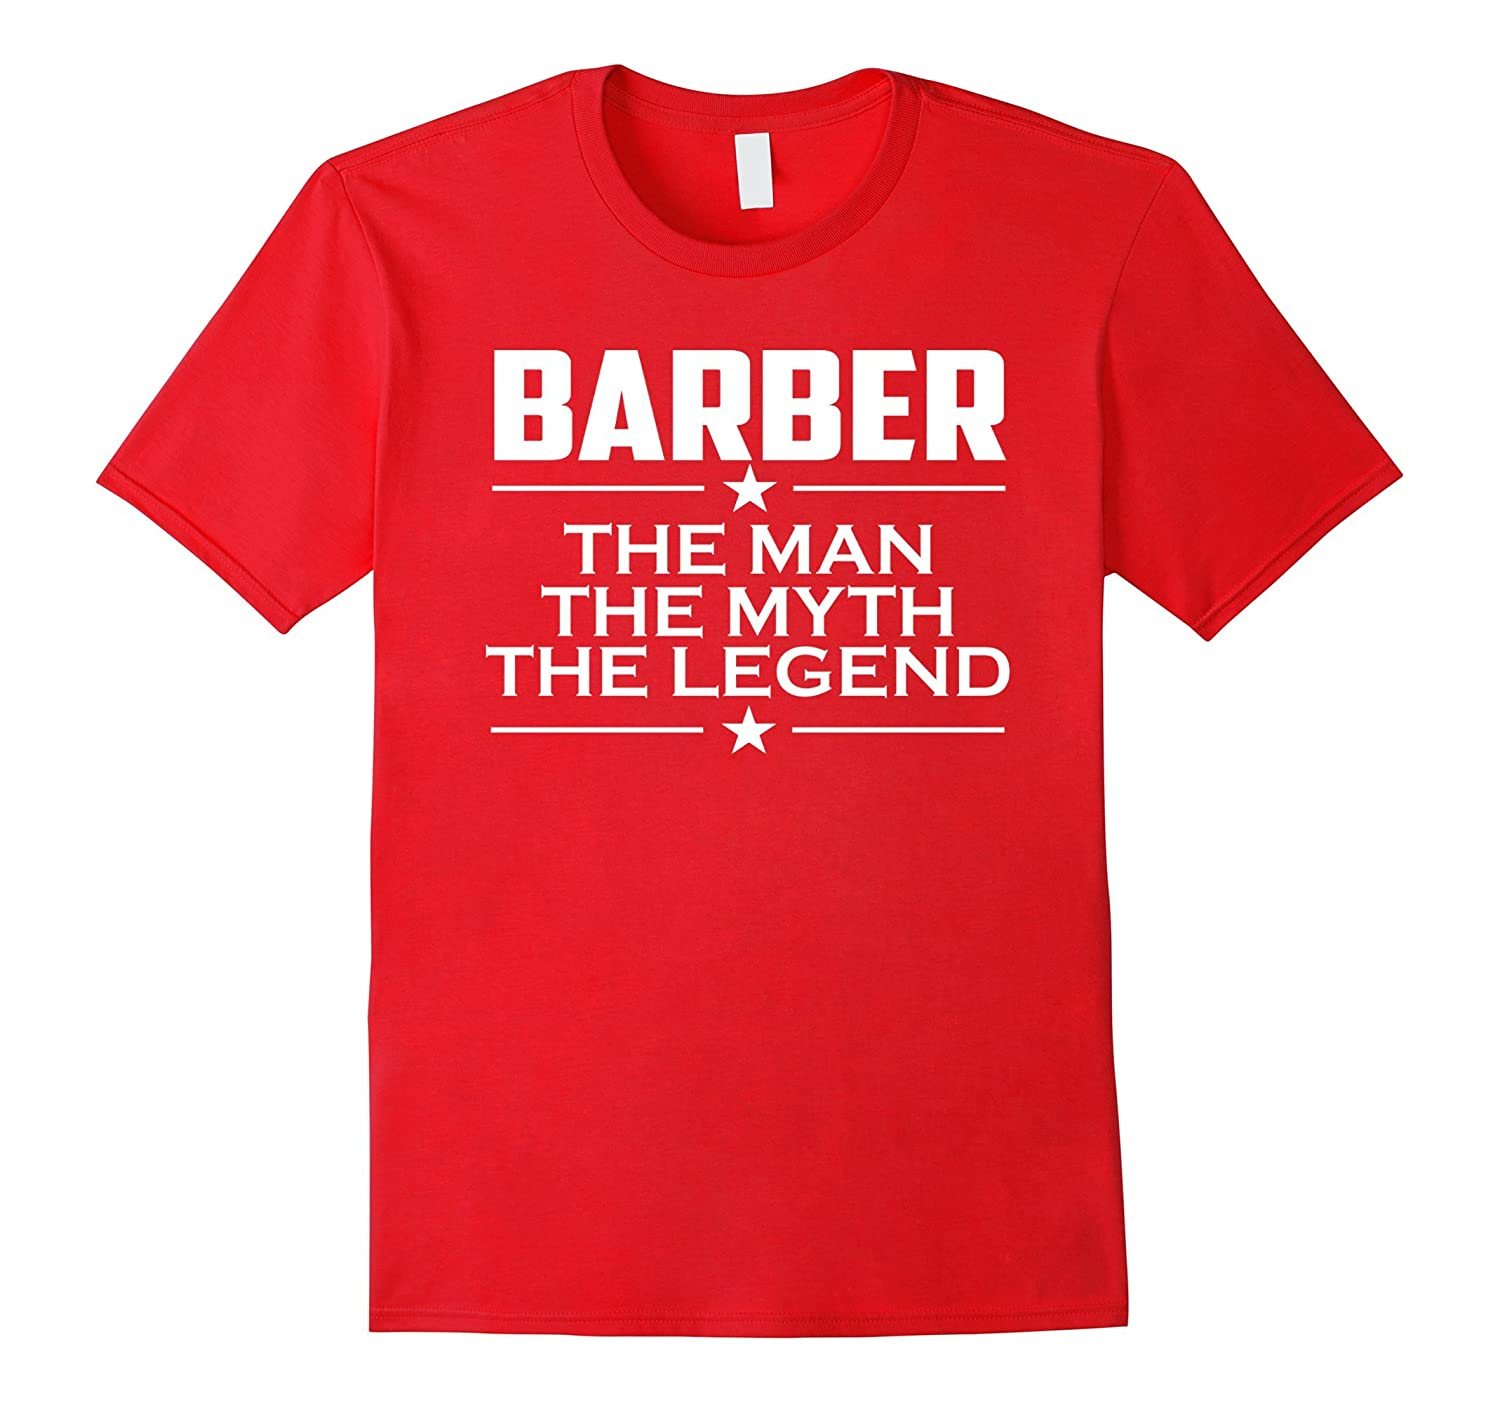 Barber T-shirt - The Man The Myth The Legend - Barber Gift-TJ